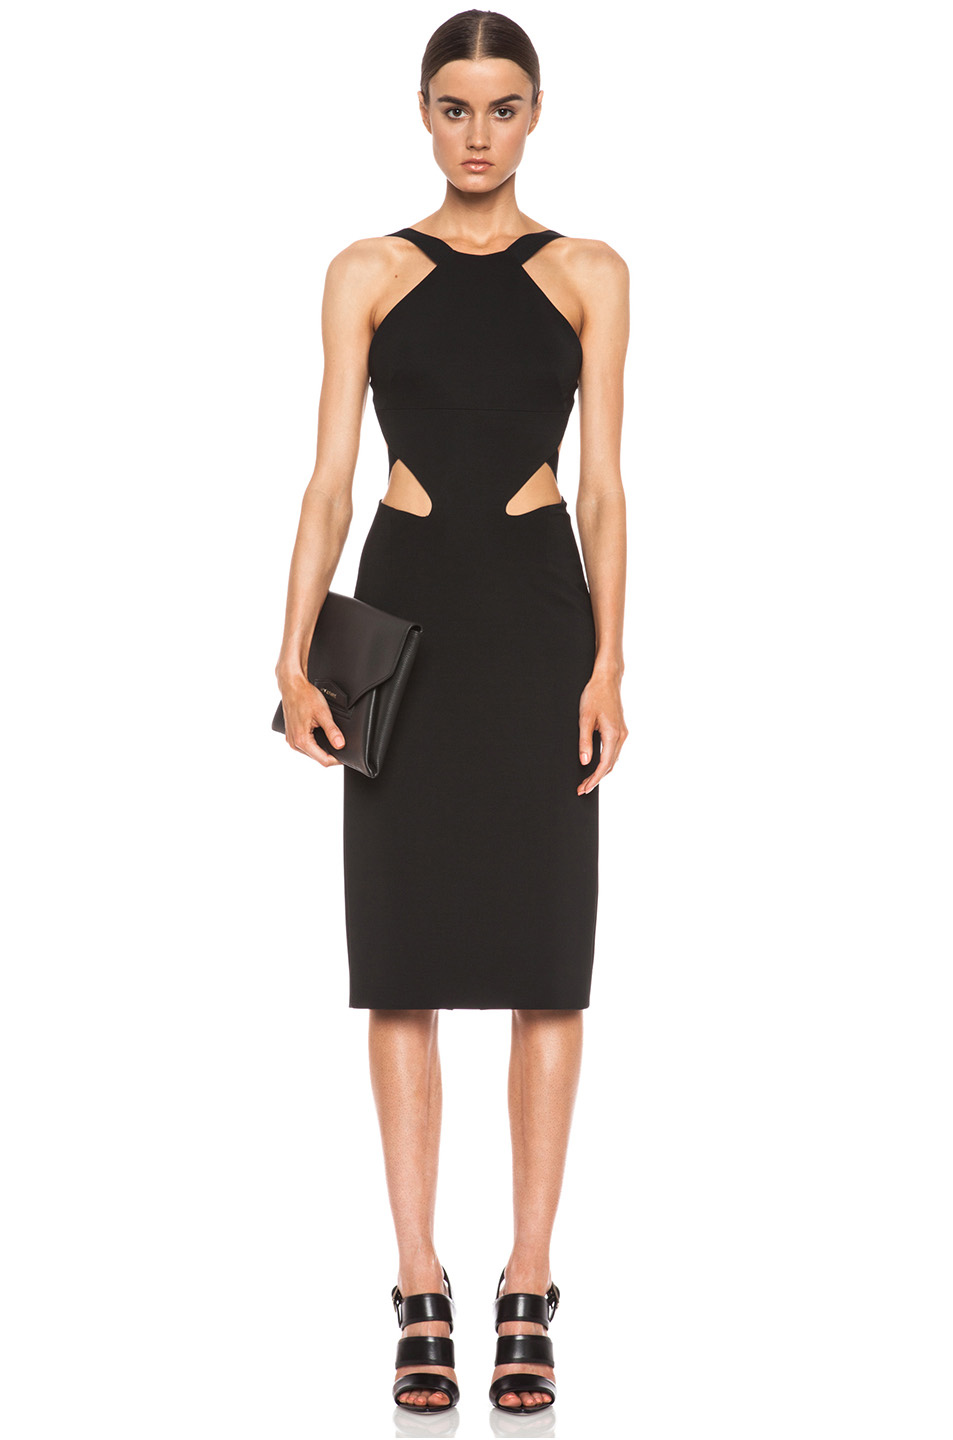 Cushnie et Ochs|Viscose-Blend Halter Dress in Black